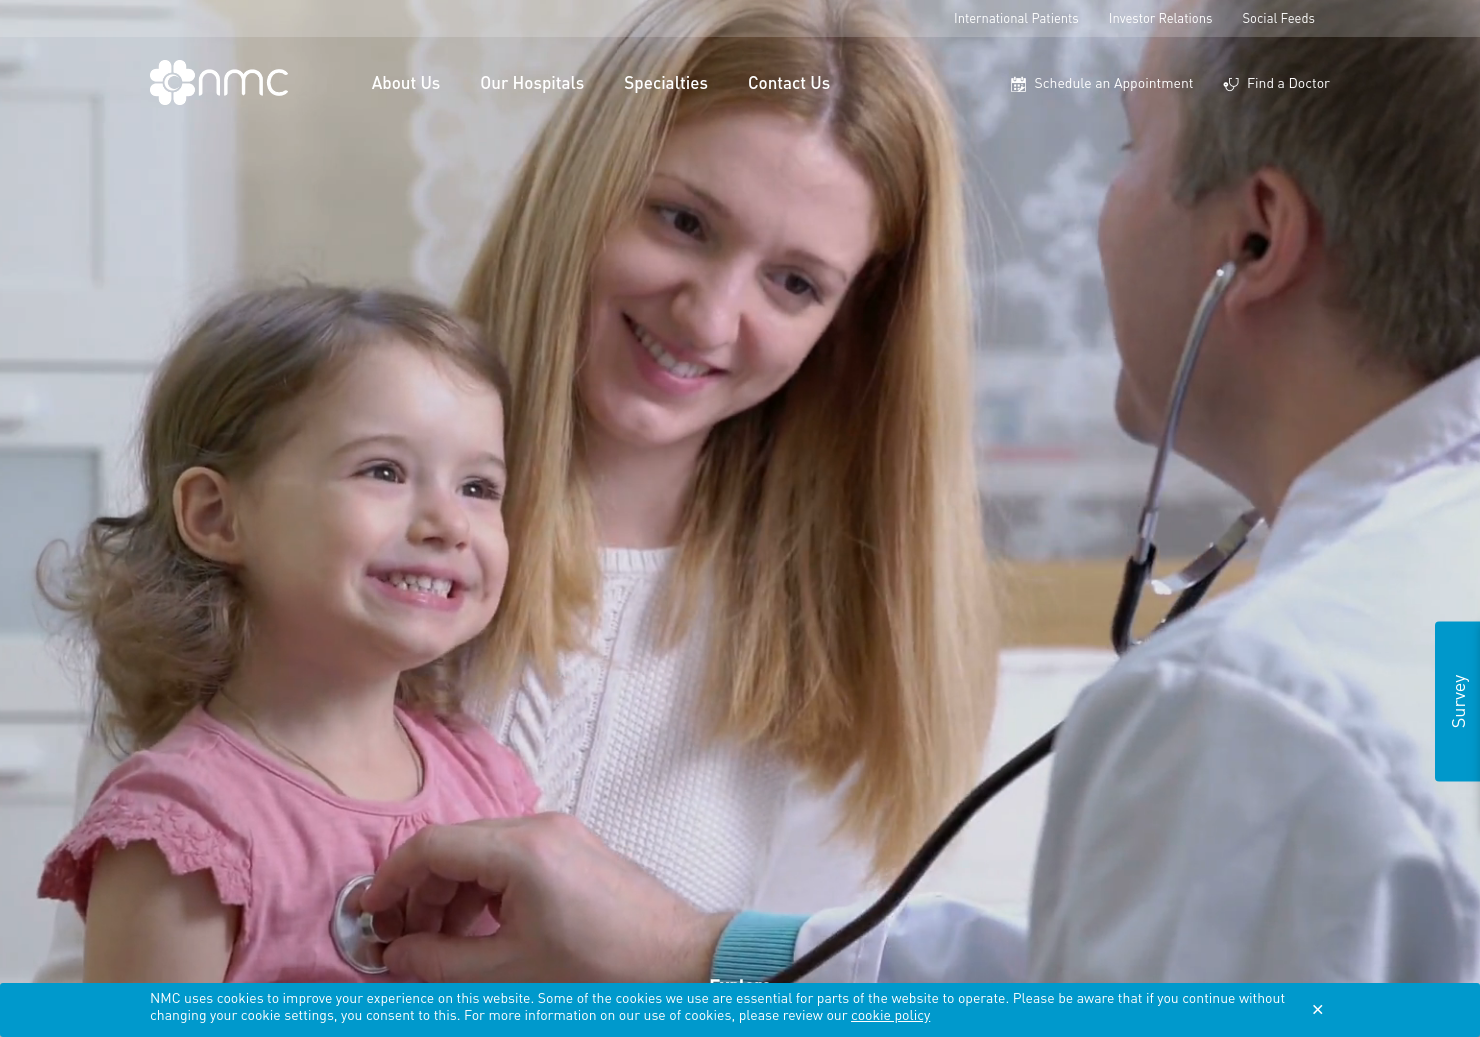 NMC Healthcare Home Page